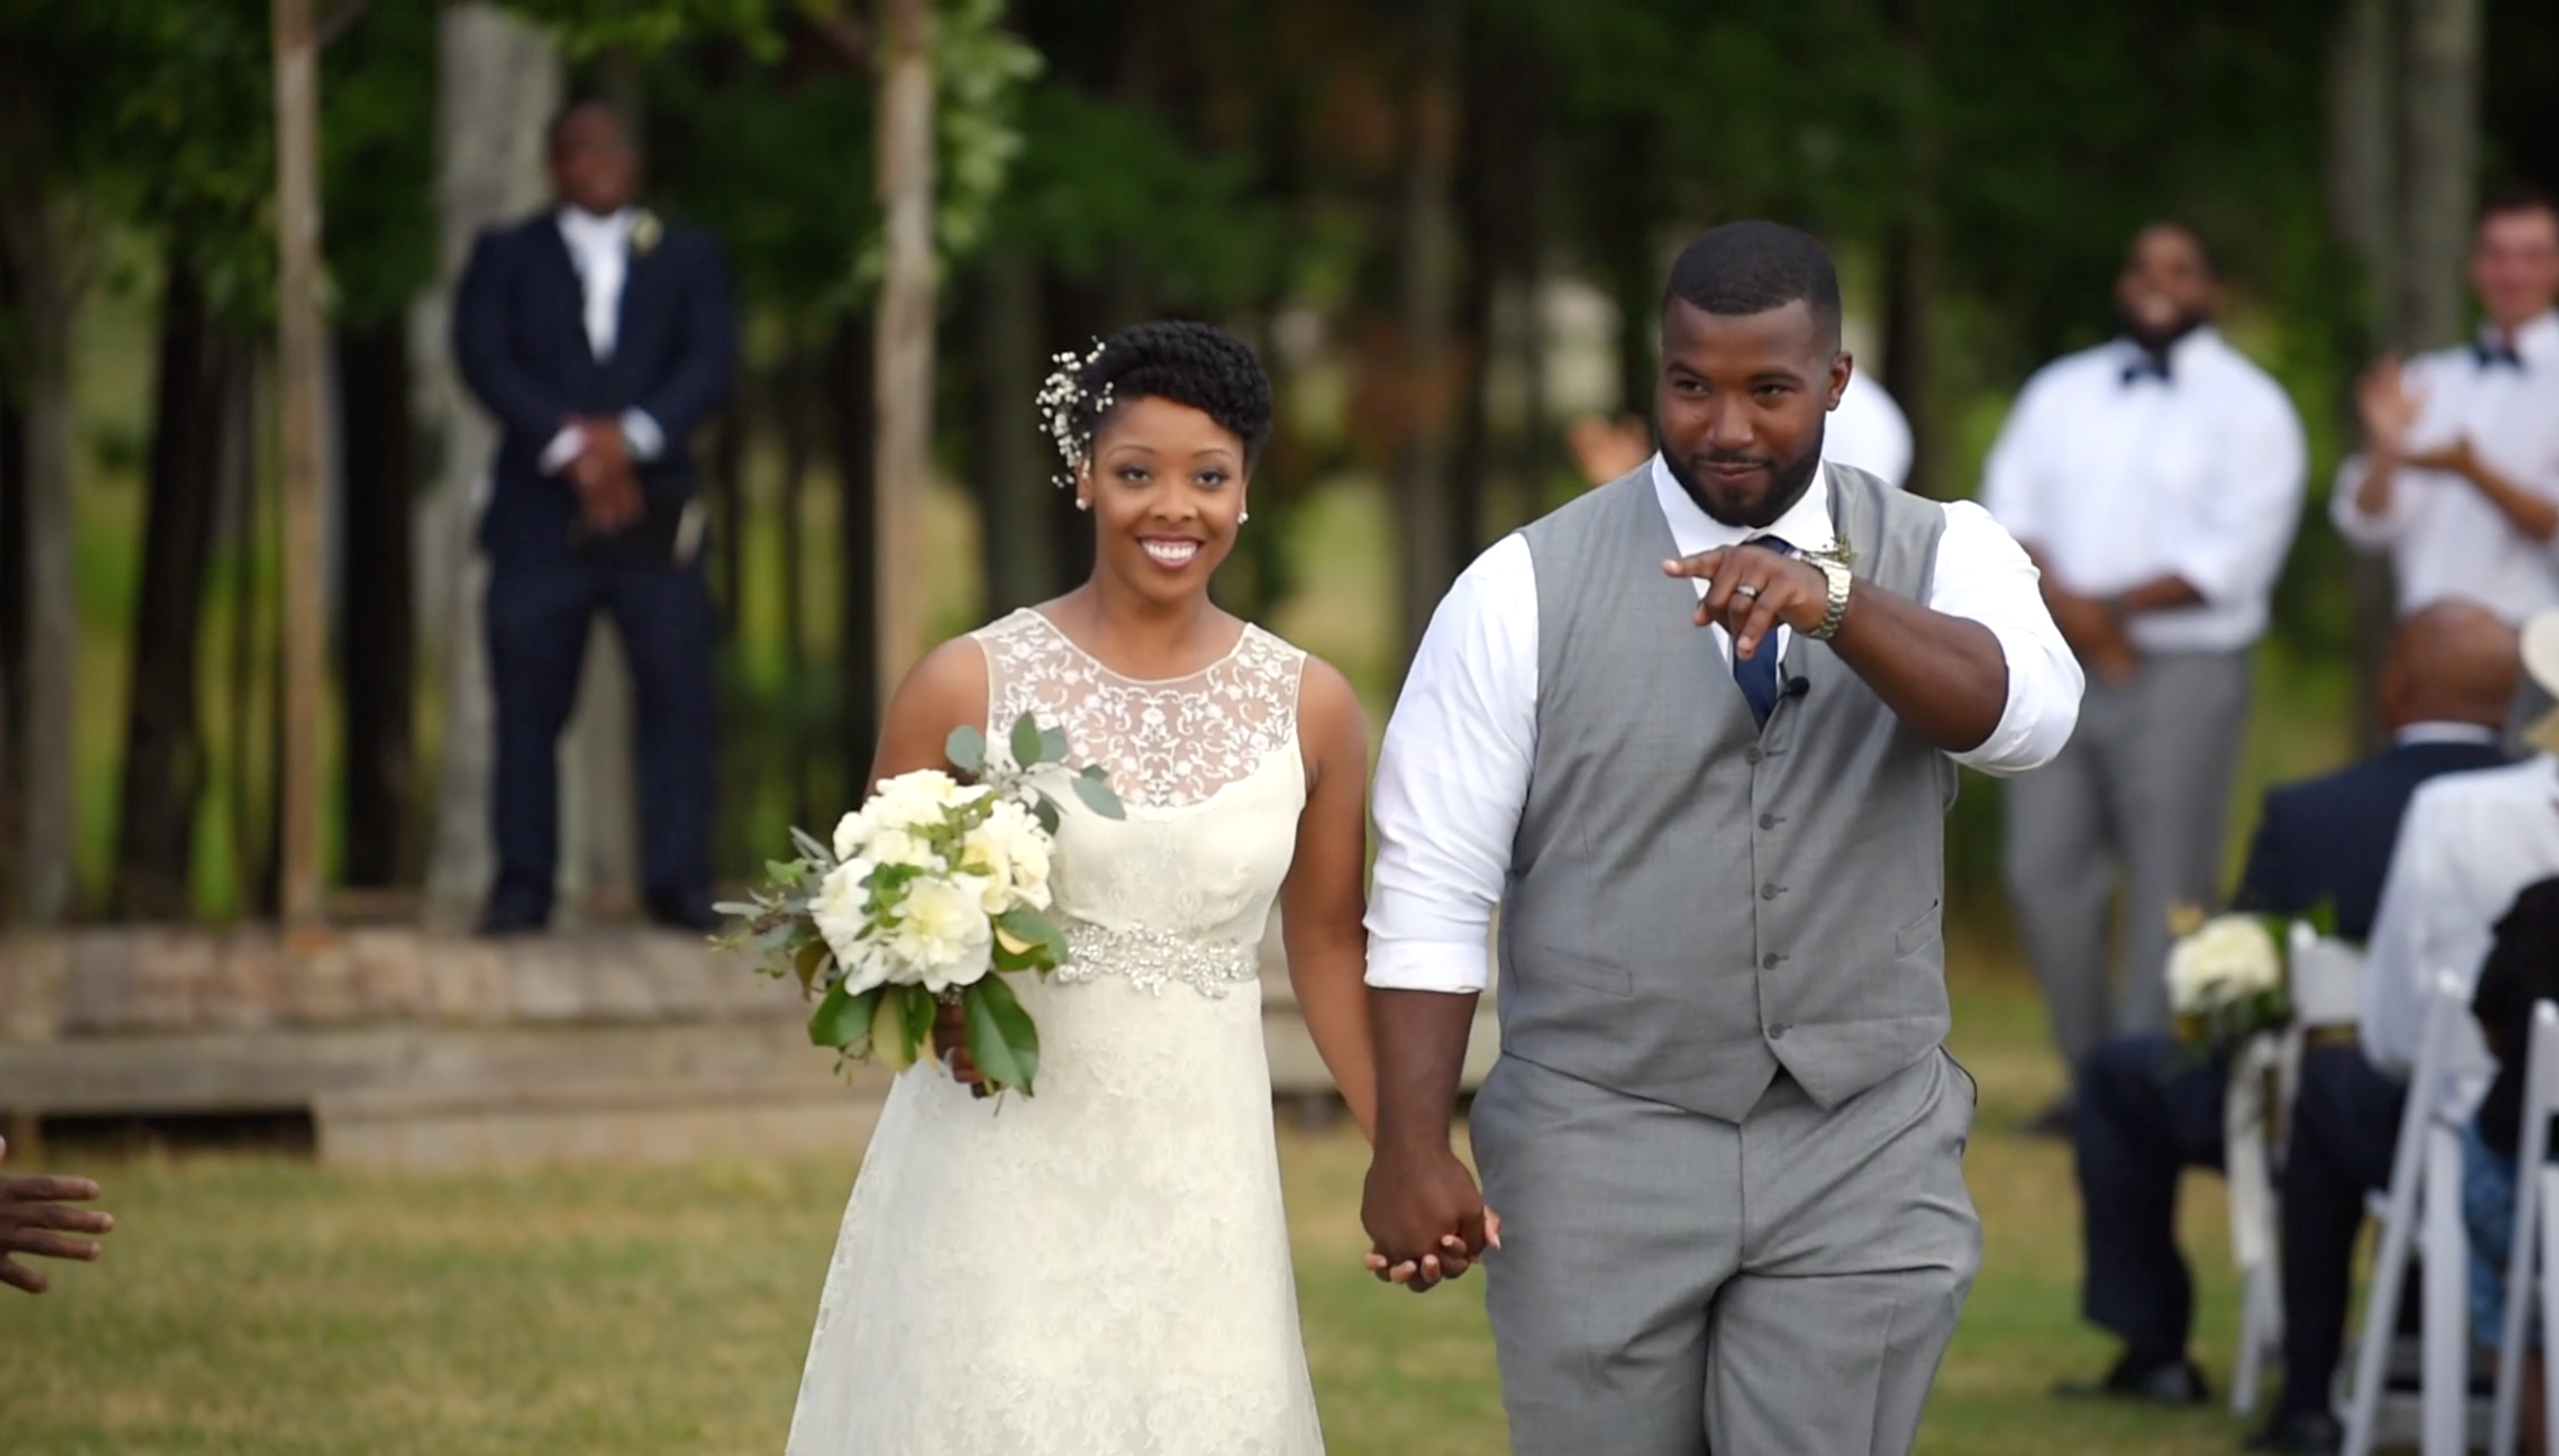 Jasmine + Reggie | Louisburg, North Carolina | A Family Farm